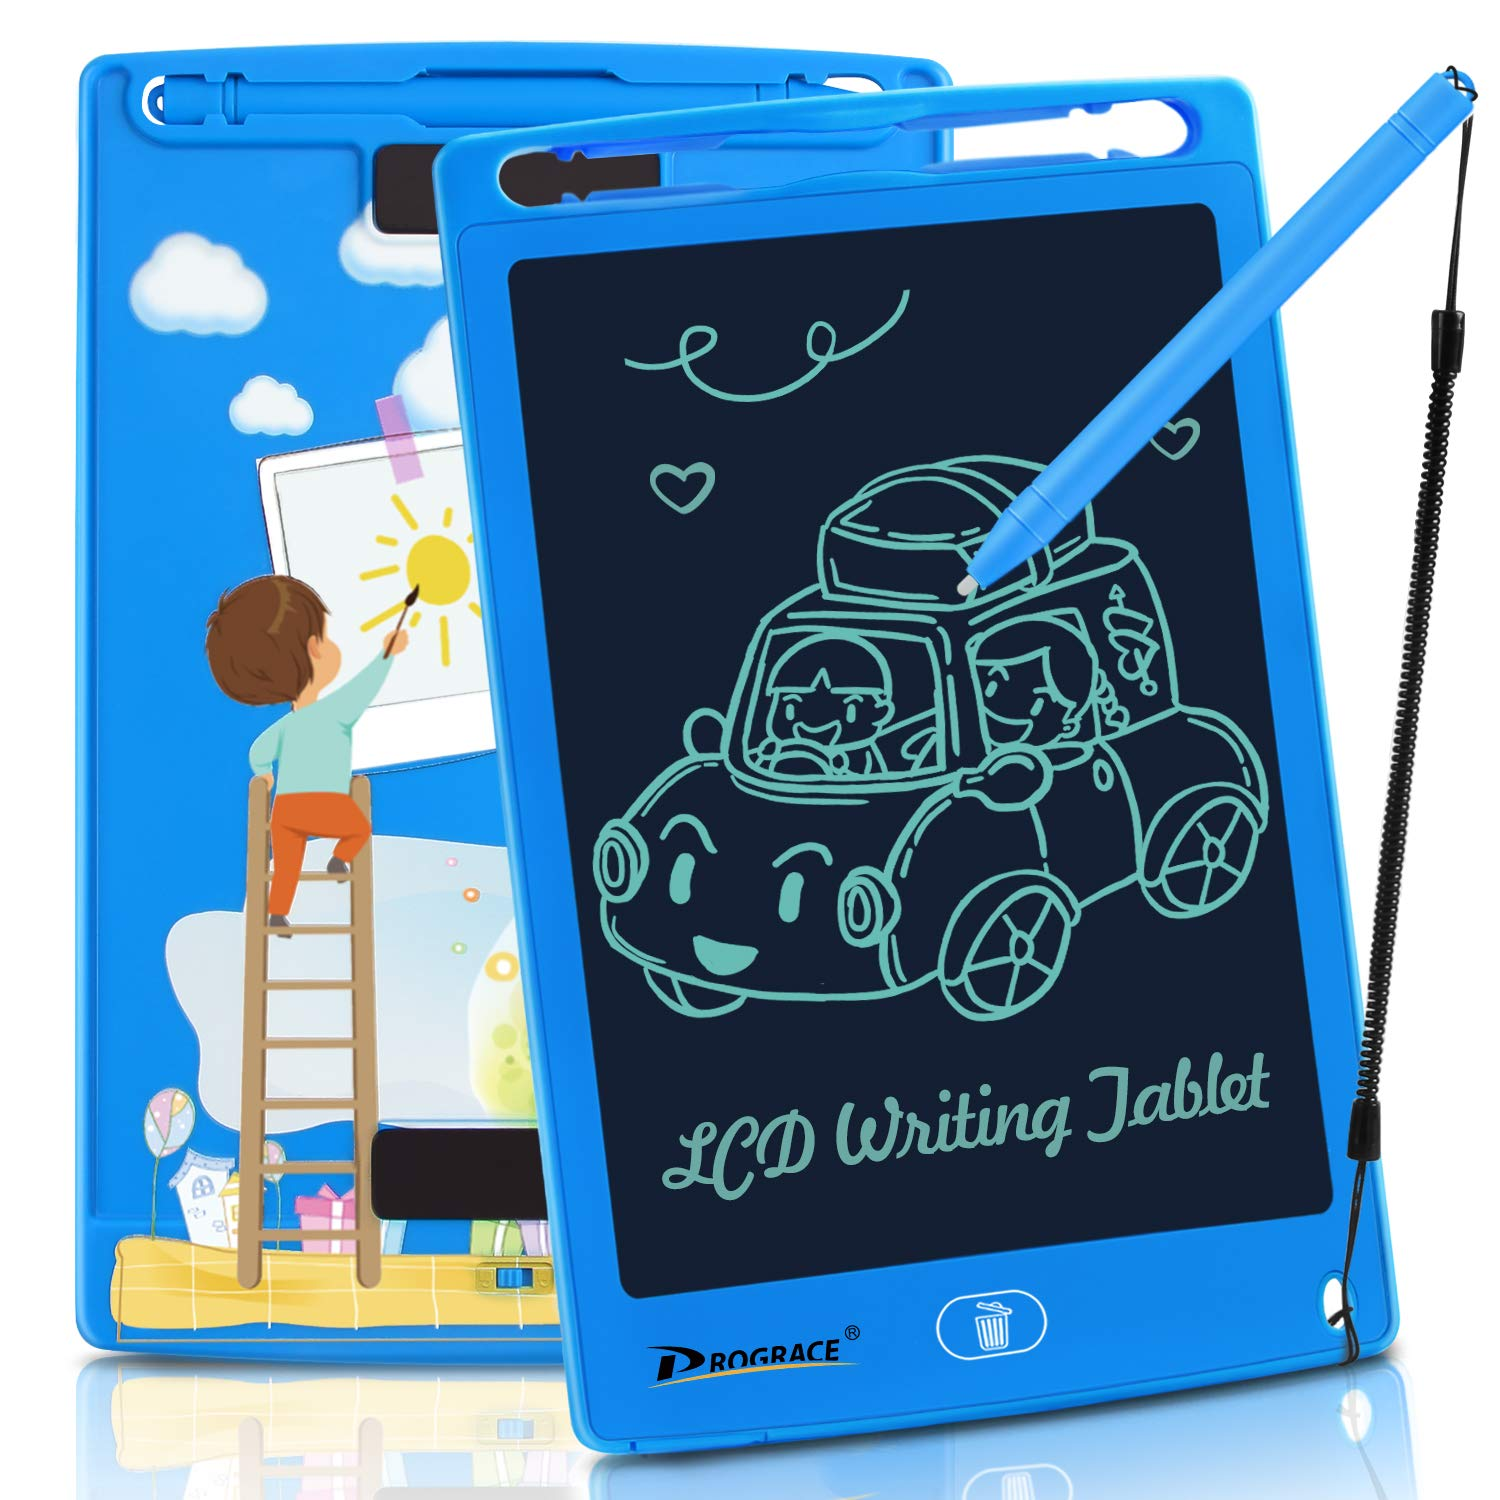 """PROGRACE LCD Writing Tablet for Kids Learning Writing Board Magnetic Erase LCD Writing Pad Smart Doodle Drawing Board for Home School Office Portable Electronic Digital Handwriting Pad 8.5"""""""